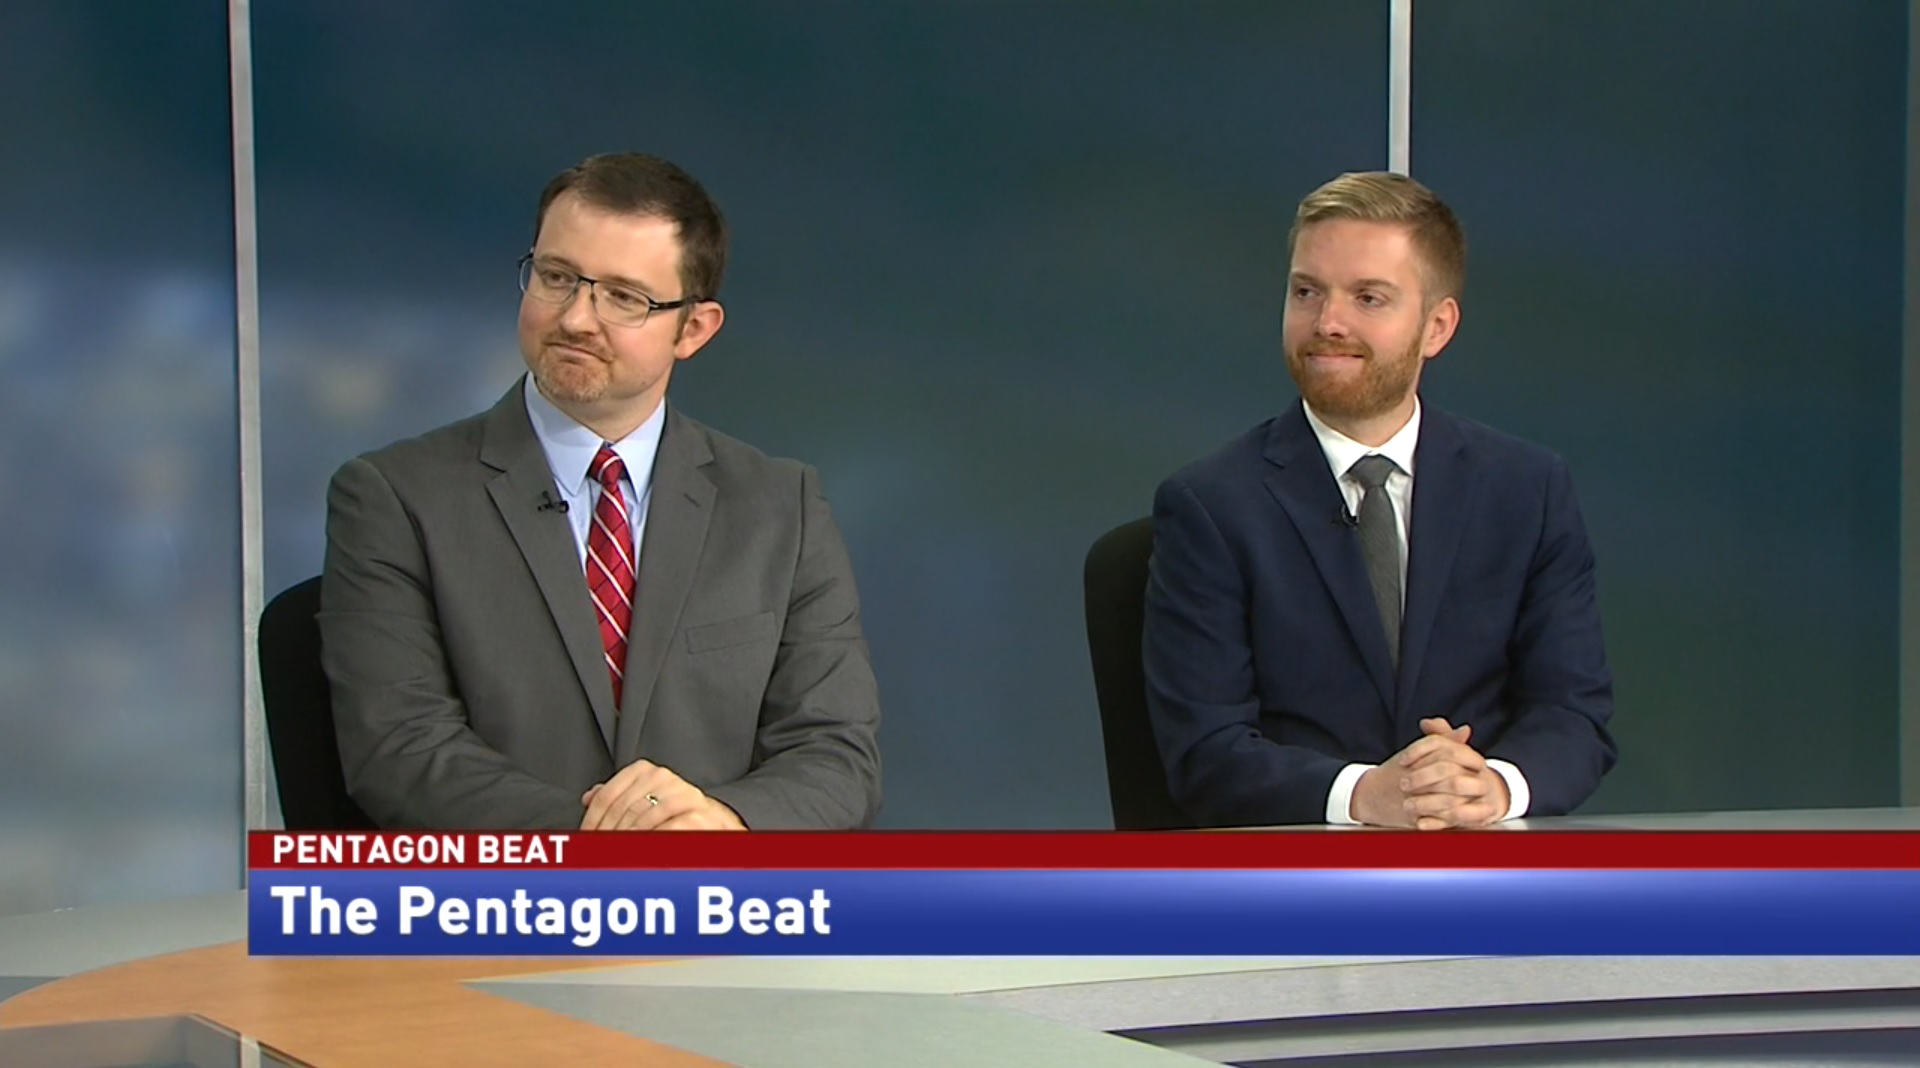 The Pentagon Beat – April 10, 2019